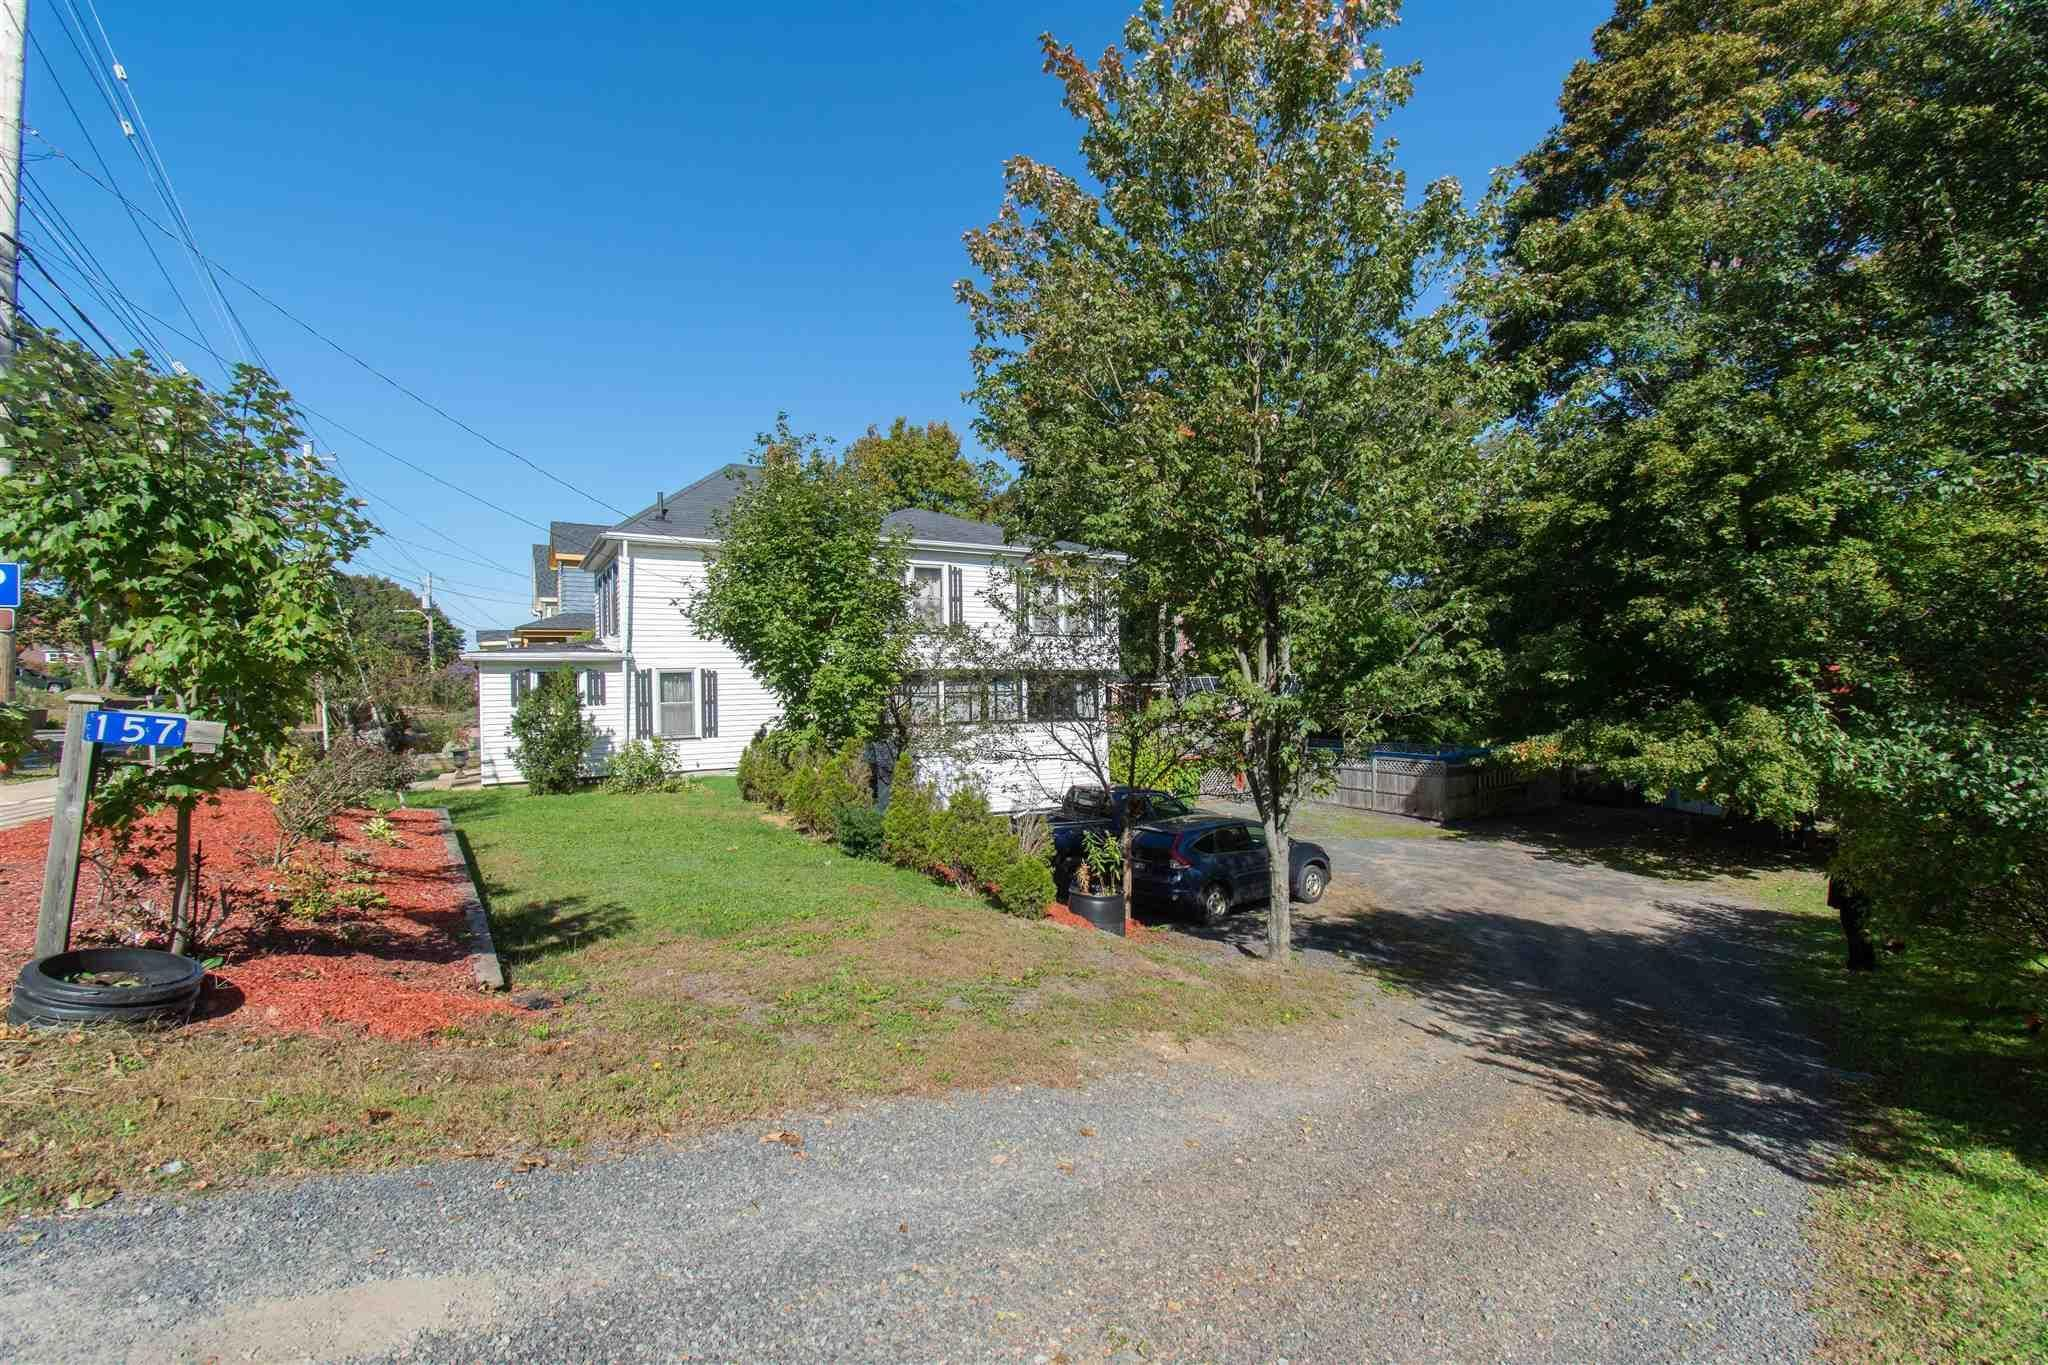 Main Photo: 157 Main Street in Kentville: 404-Kings County Residential for sale (Annapolis Valley)  : MLS®# 202125519